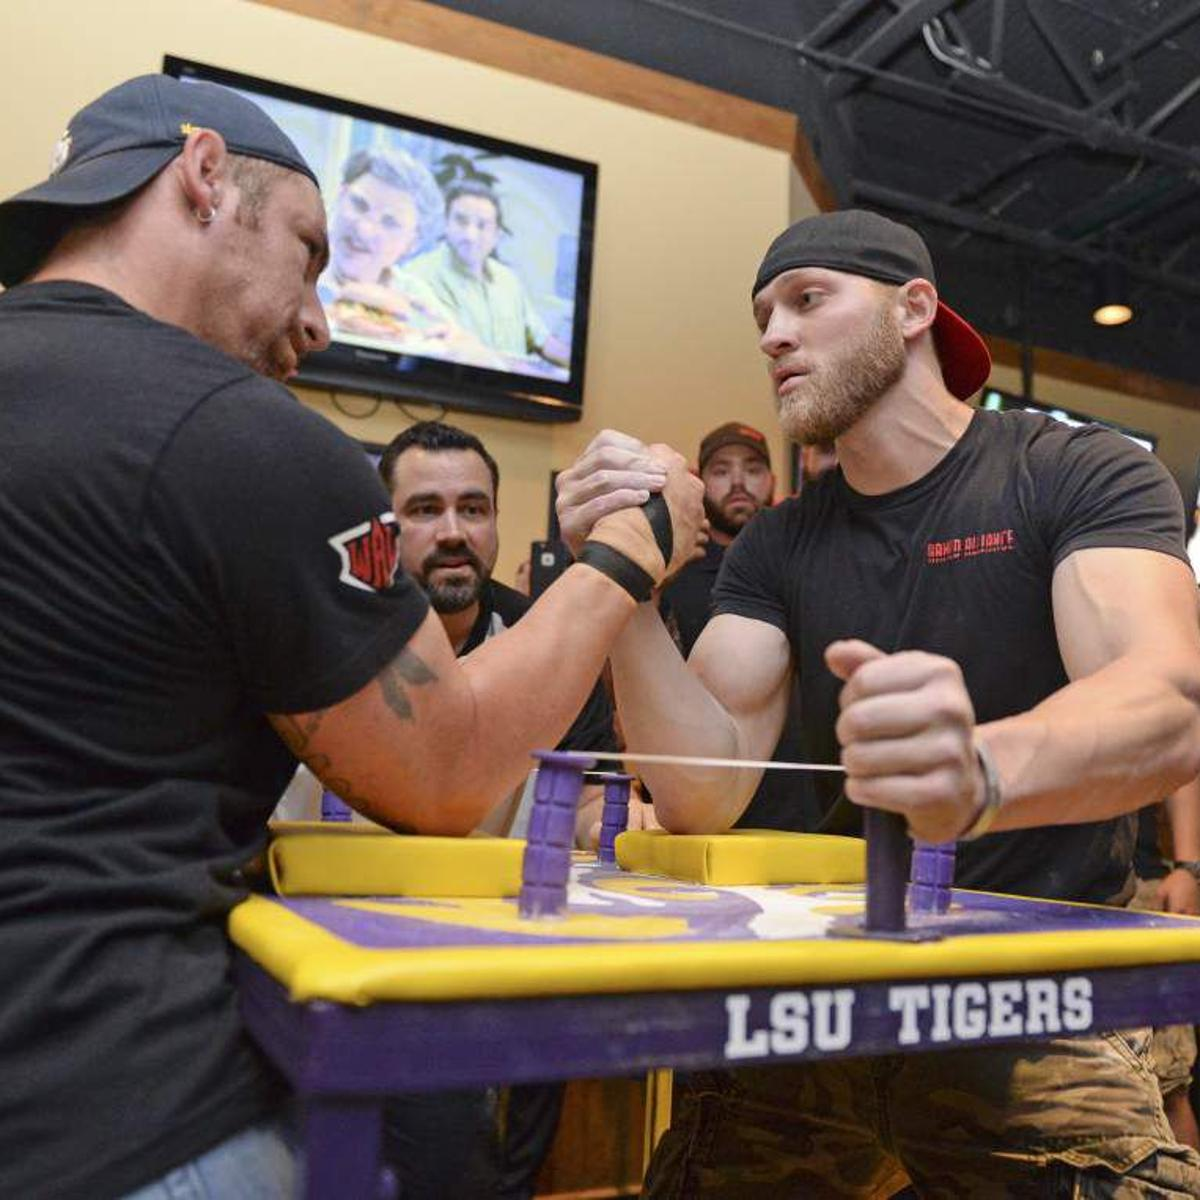 They Re Doing It For Pride Respect Baton Rouge Arm Wrestling Competition A Showcase For The Strong News Theadvocate Com